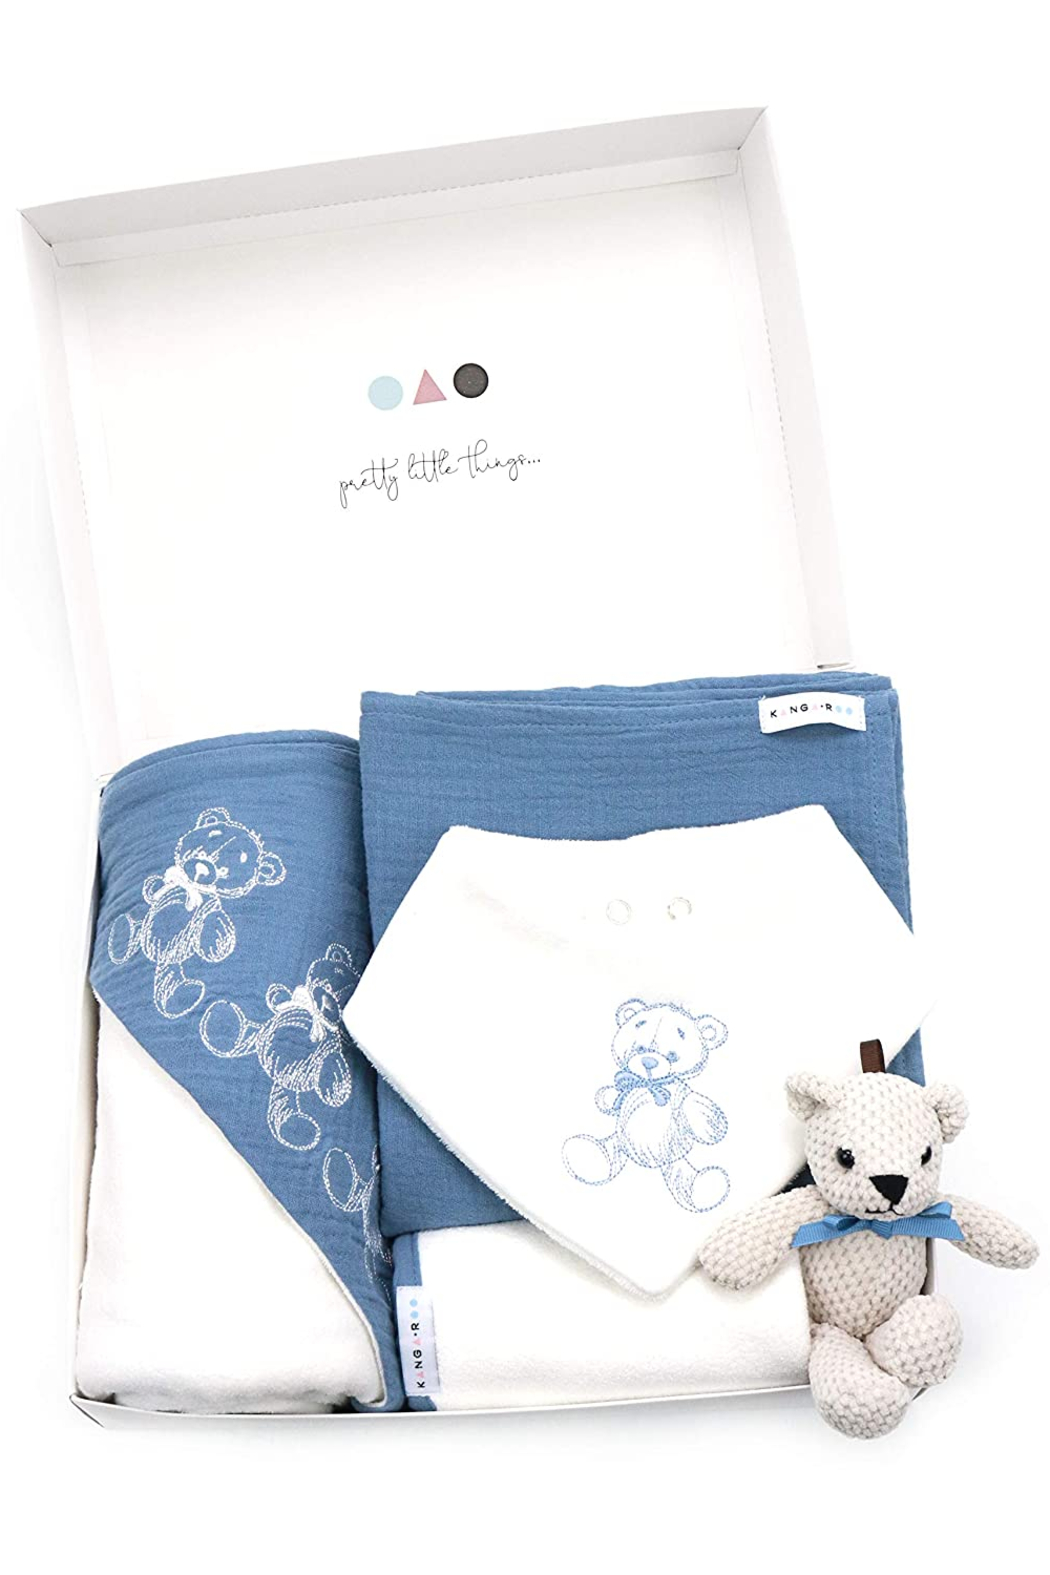 Kanga+Roo Newborn Baby Gift Basket Set - Shower Gifting for Girls. 5 Piece Set. Large Hooded Baby Towel, Washcloth, Cotton Swaddle and Teddy Bear. - Front Full Image